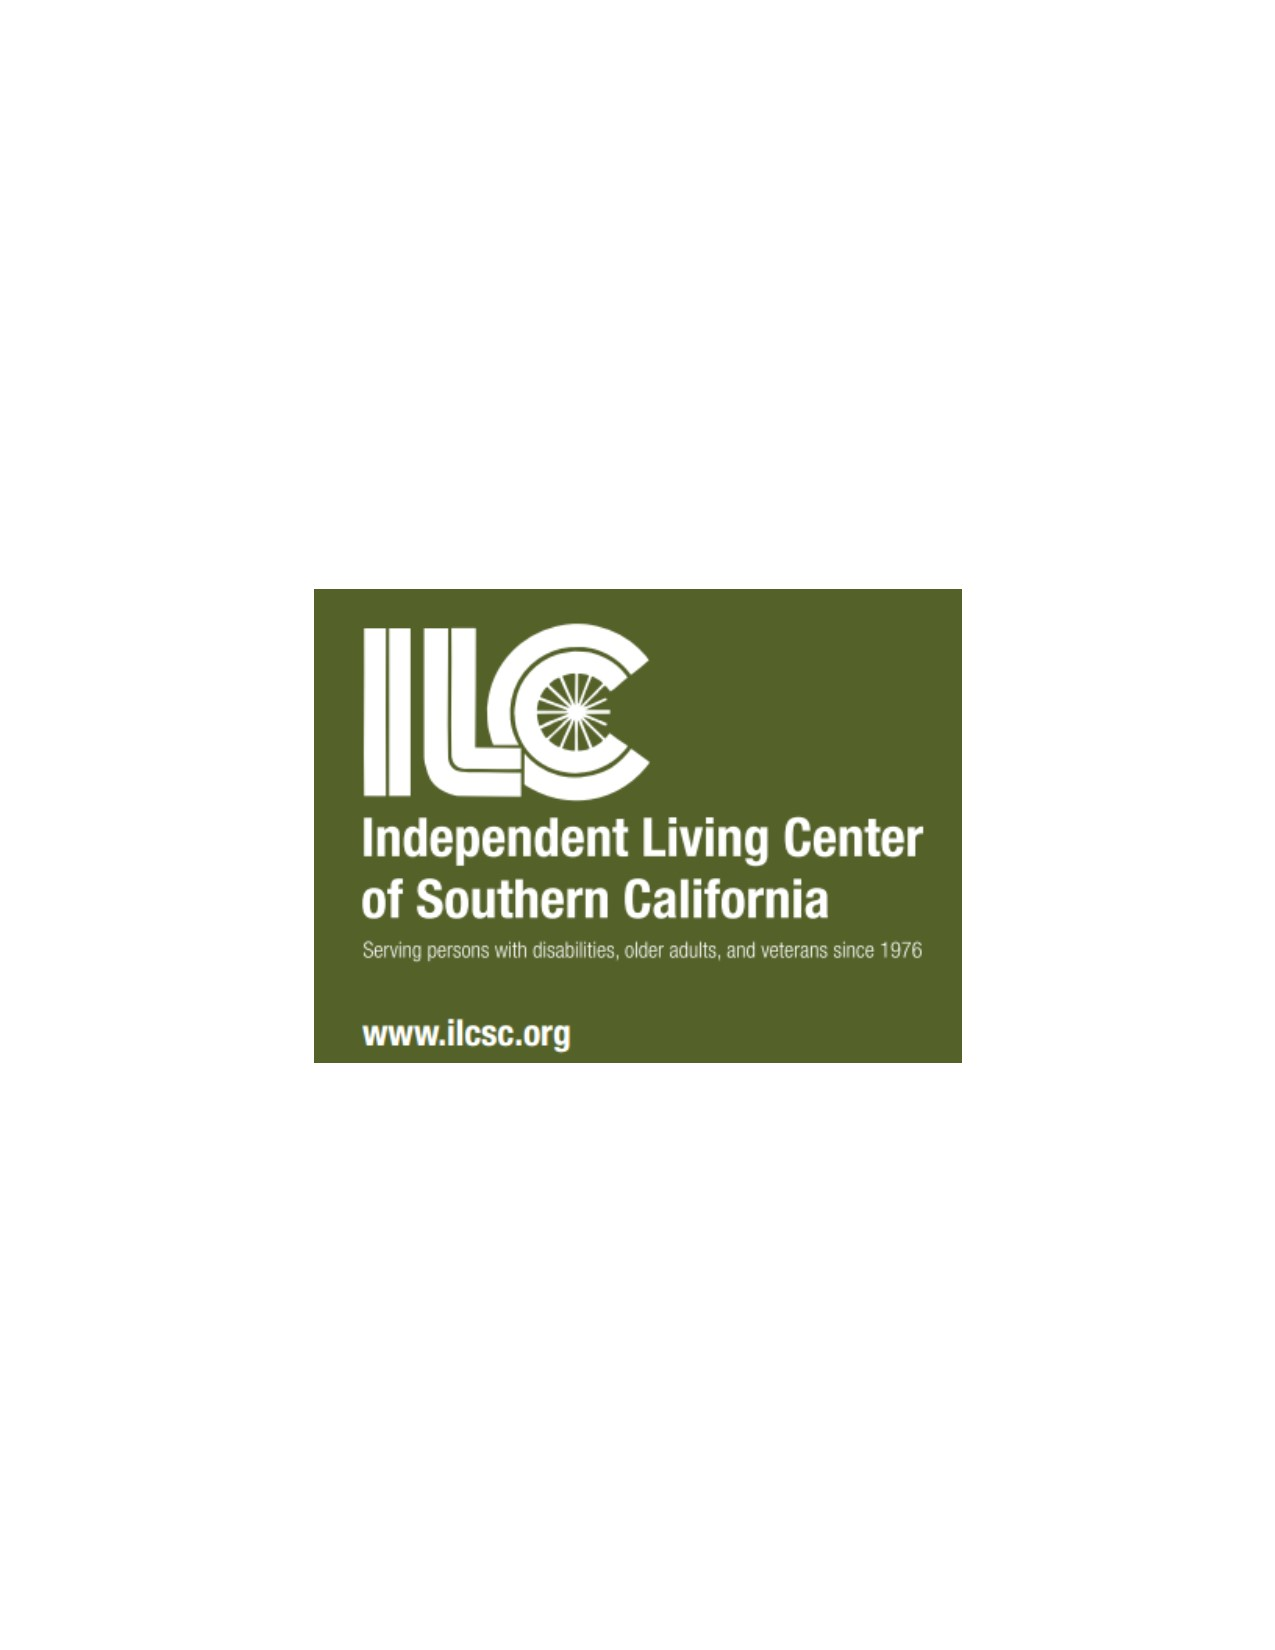 Independent Living Center